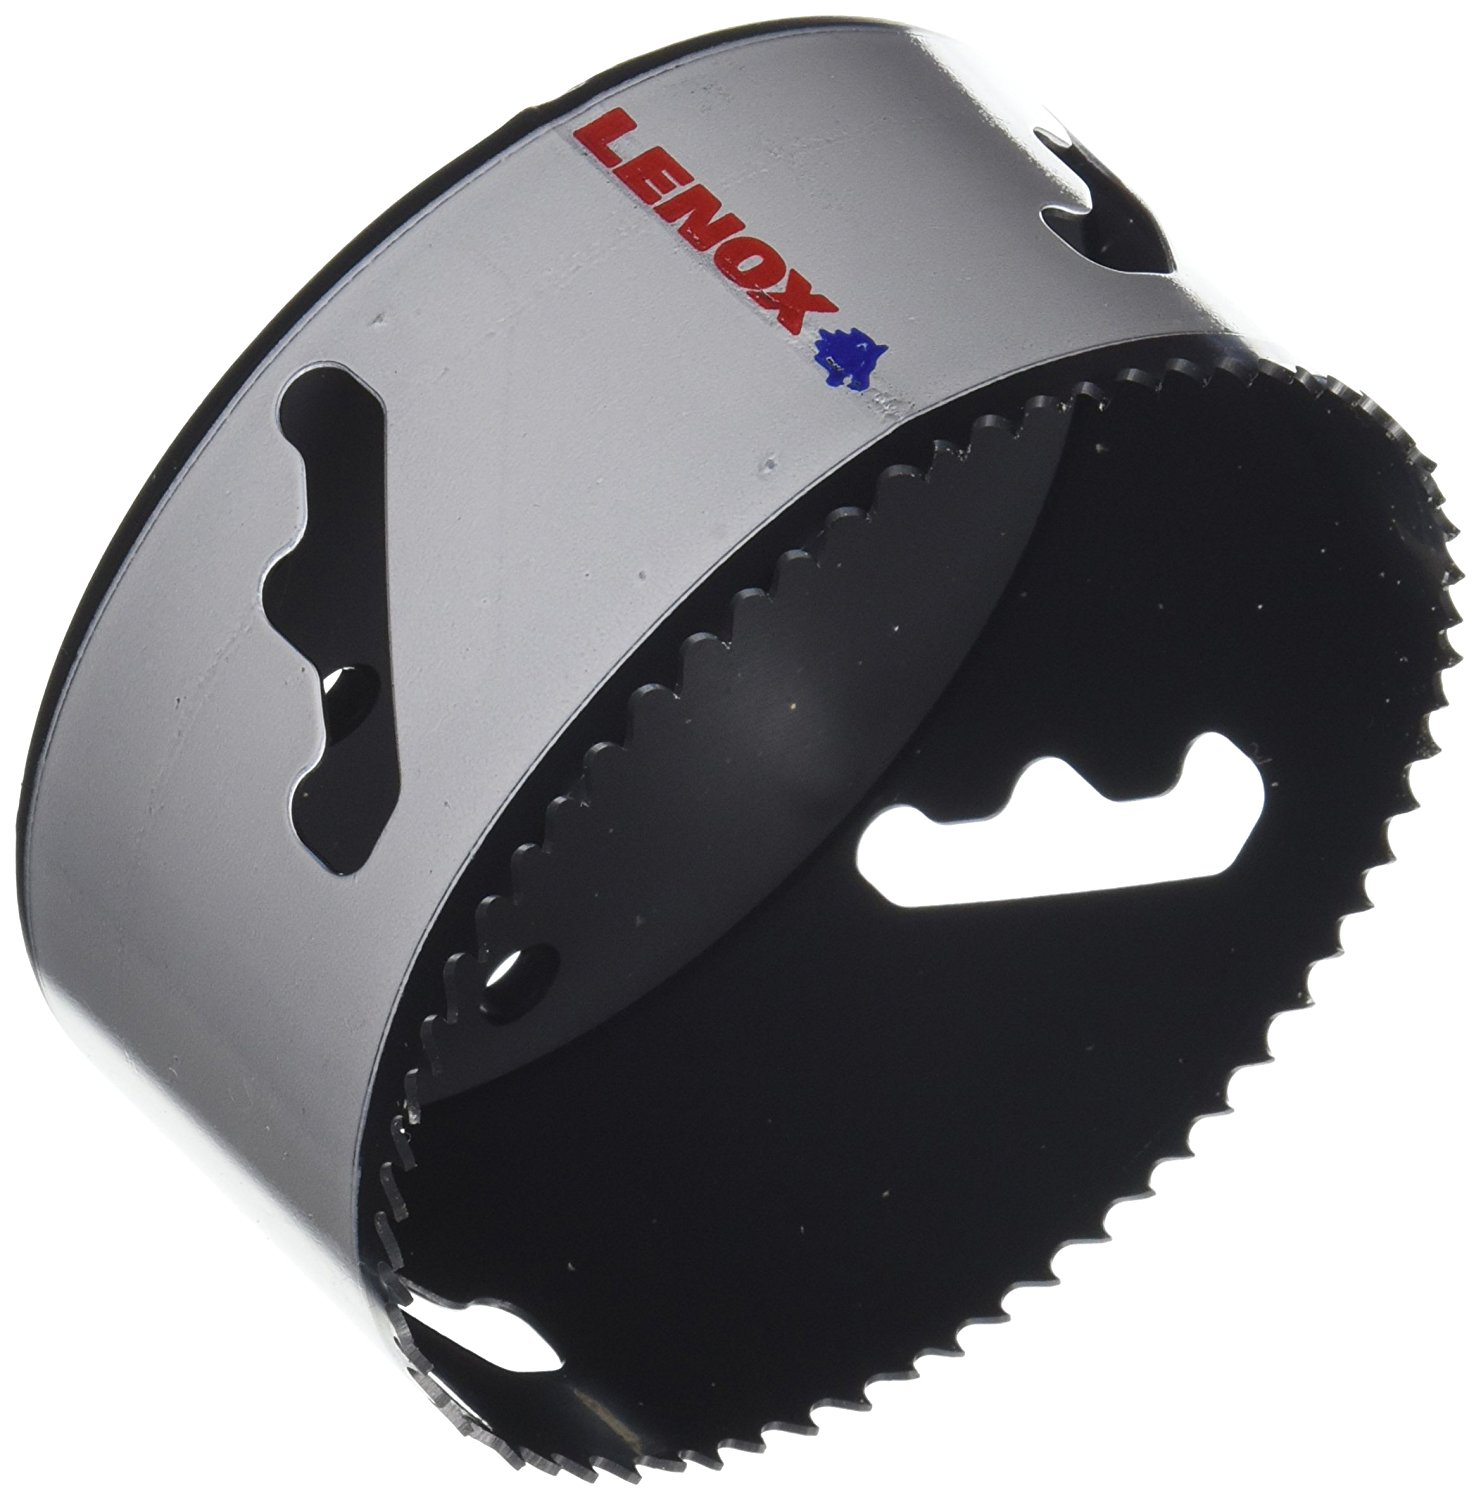 LENOX Tools Bi-Metal Speed Slot Hole Saw with T3 Technology, 4-3/8